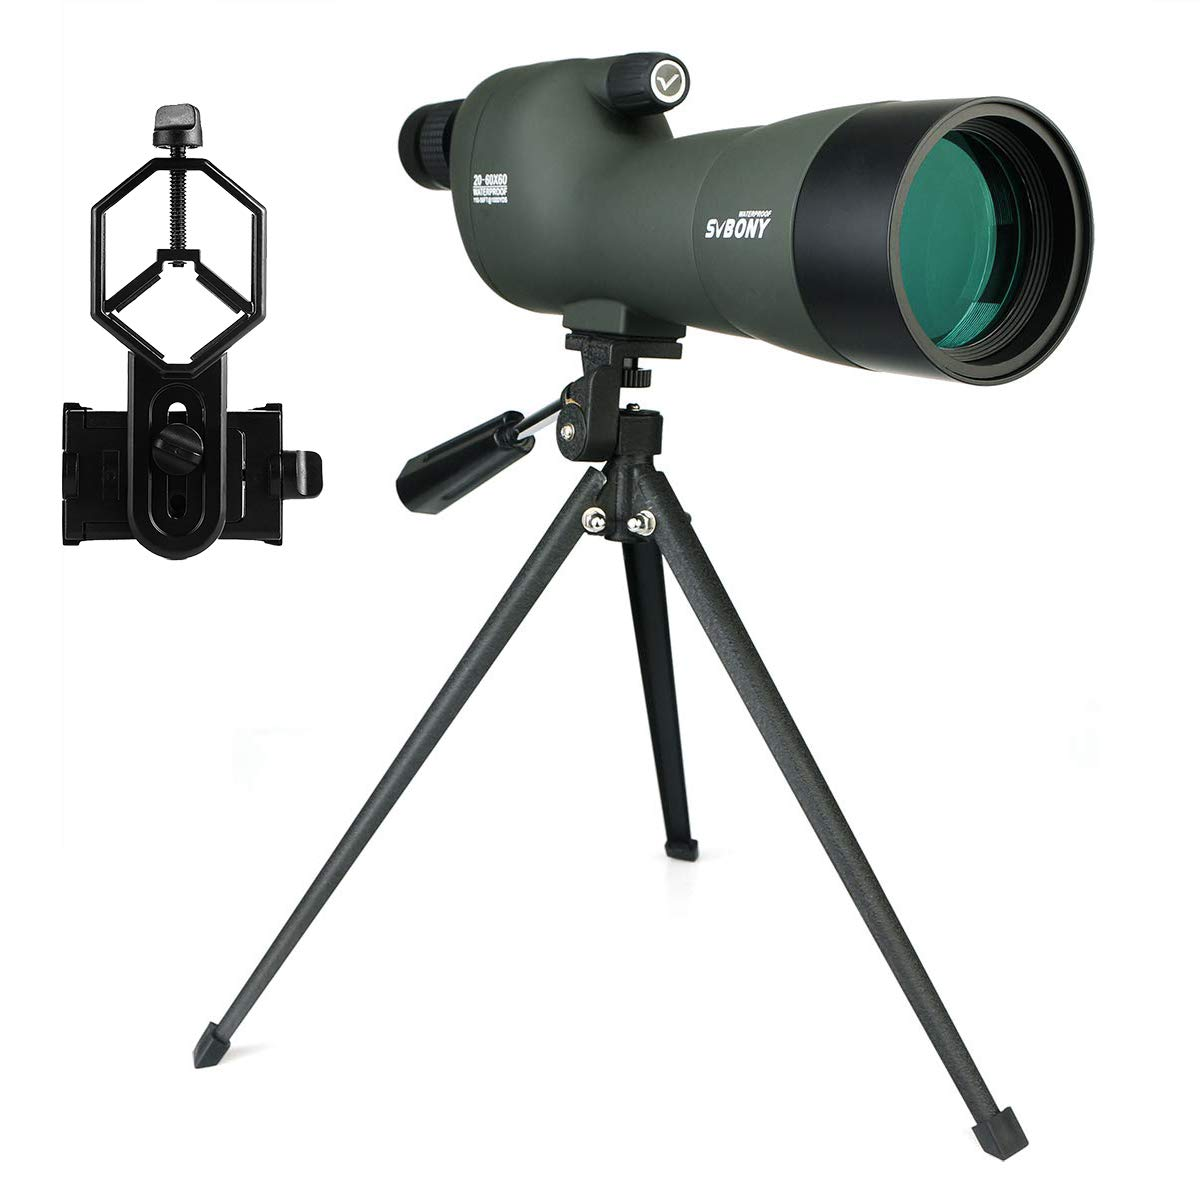 SVBONY SV28 20-60x60 Spotting Scopes Straight Scope Telescope for Bird Watching Target Shooting Hunting Waterproof Spotting Scopes tabletop tripod by SVBONY